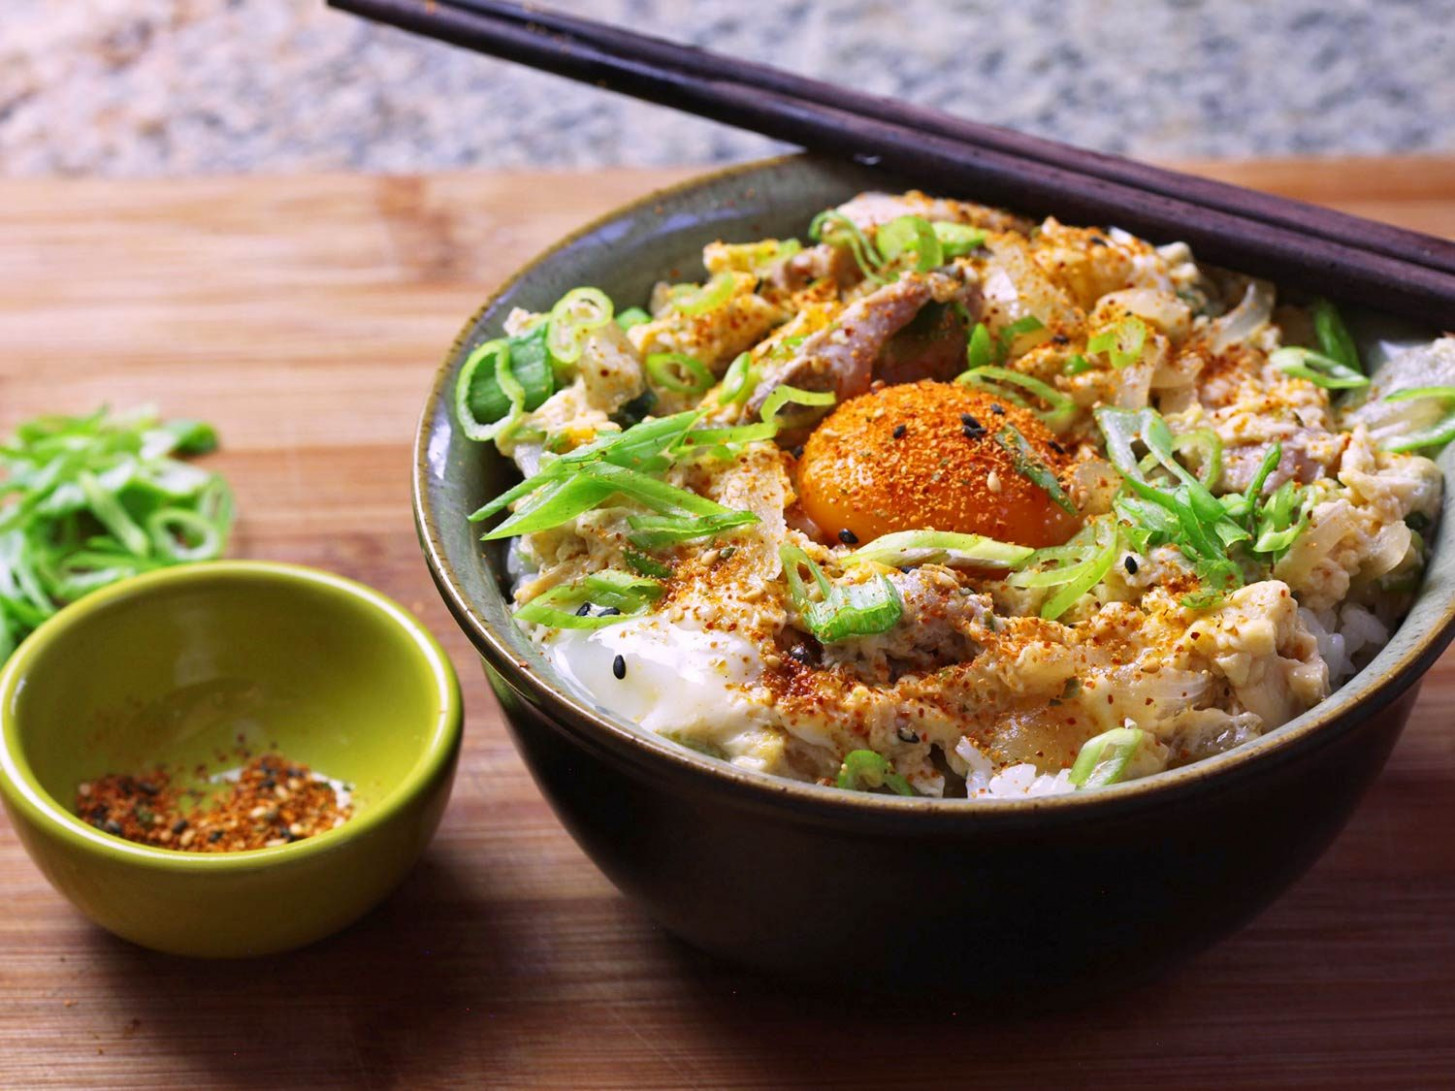 Oyakodon (Japanese Chicken And Egg Rice Bowl) Recipe - Chicken Recipes With Rice